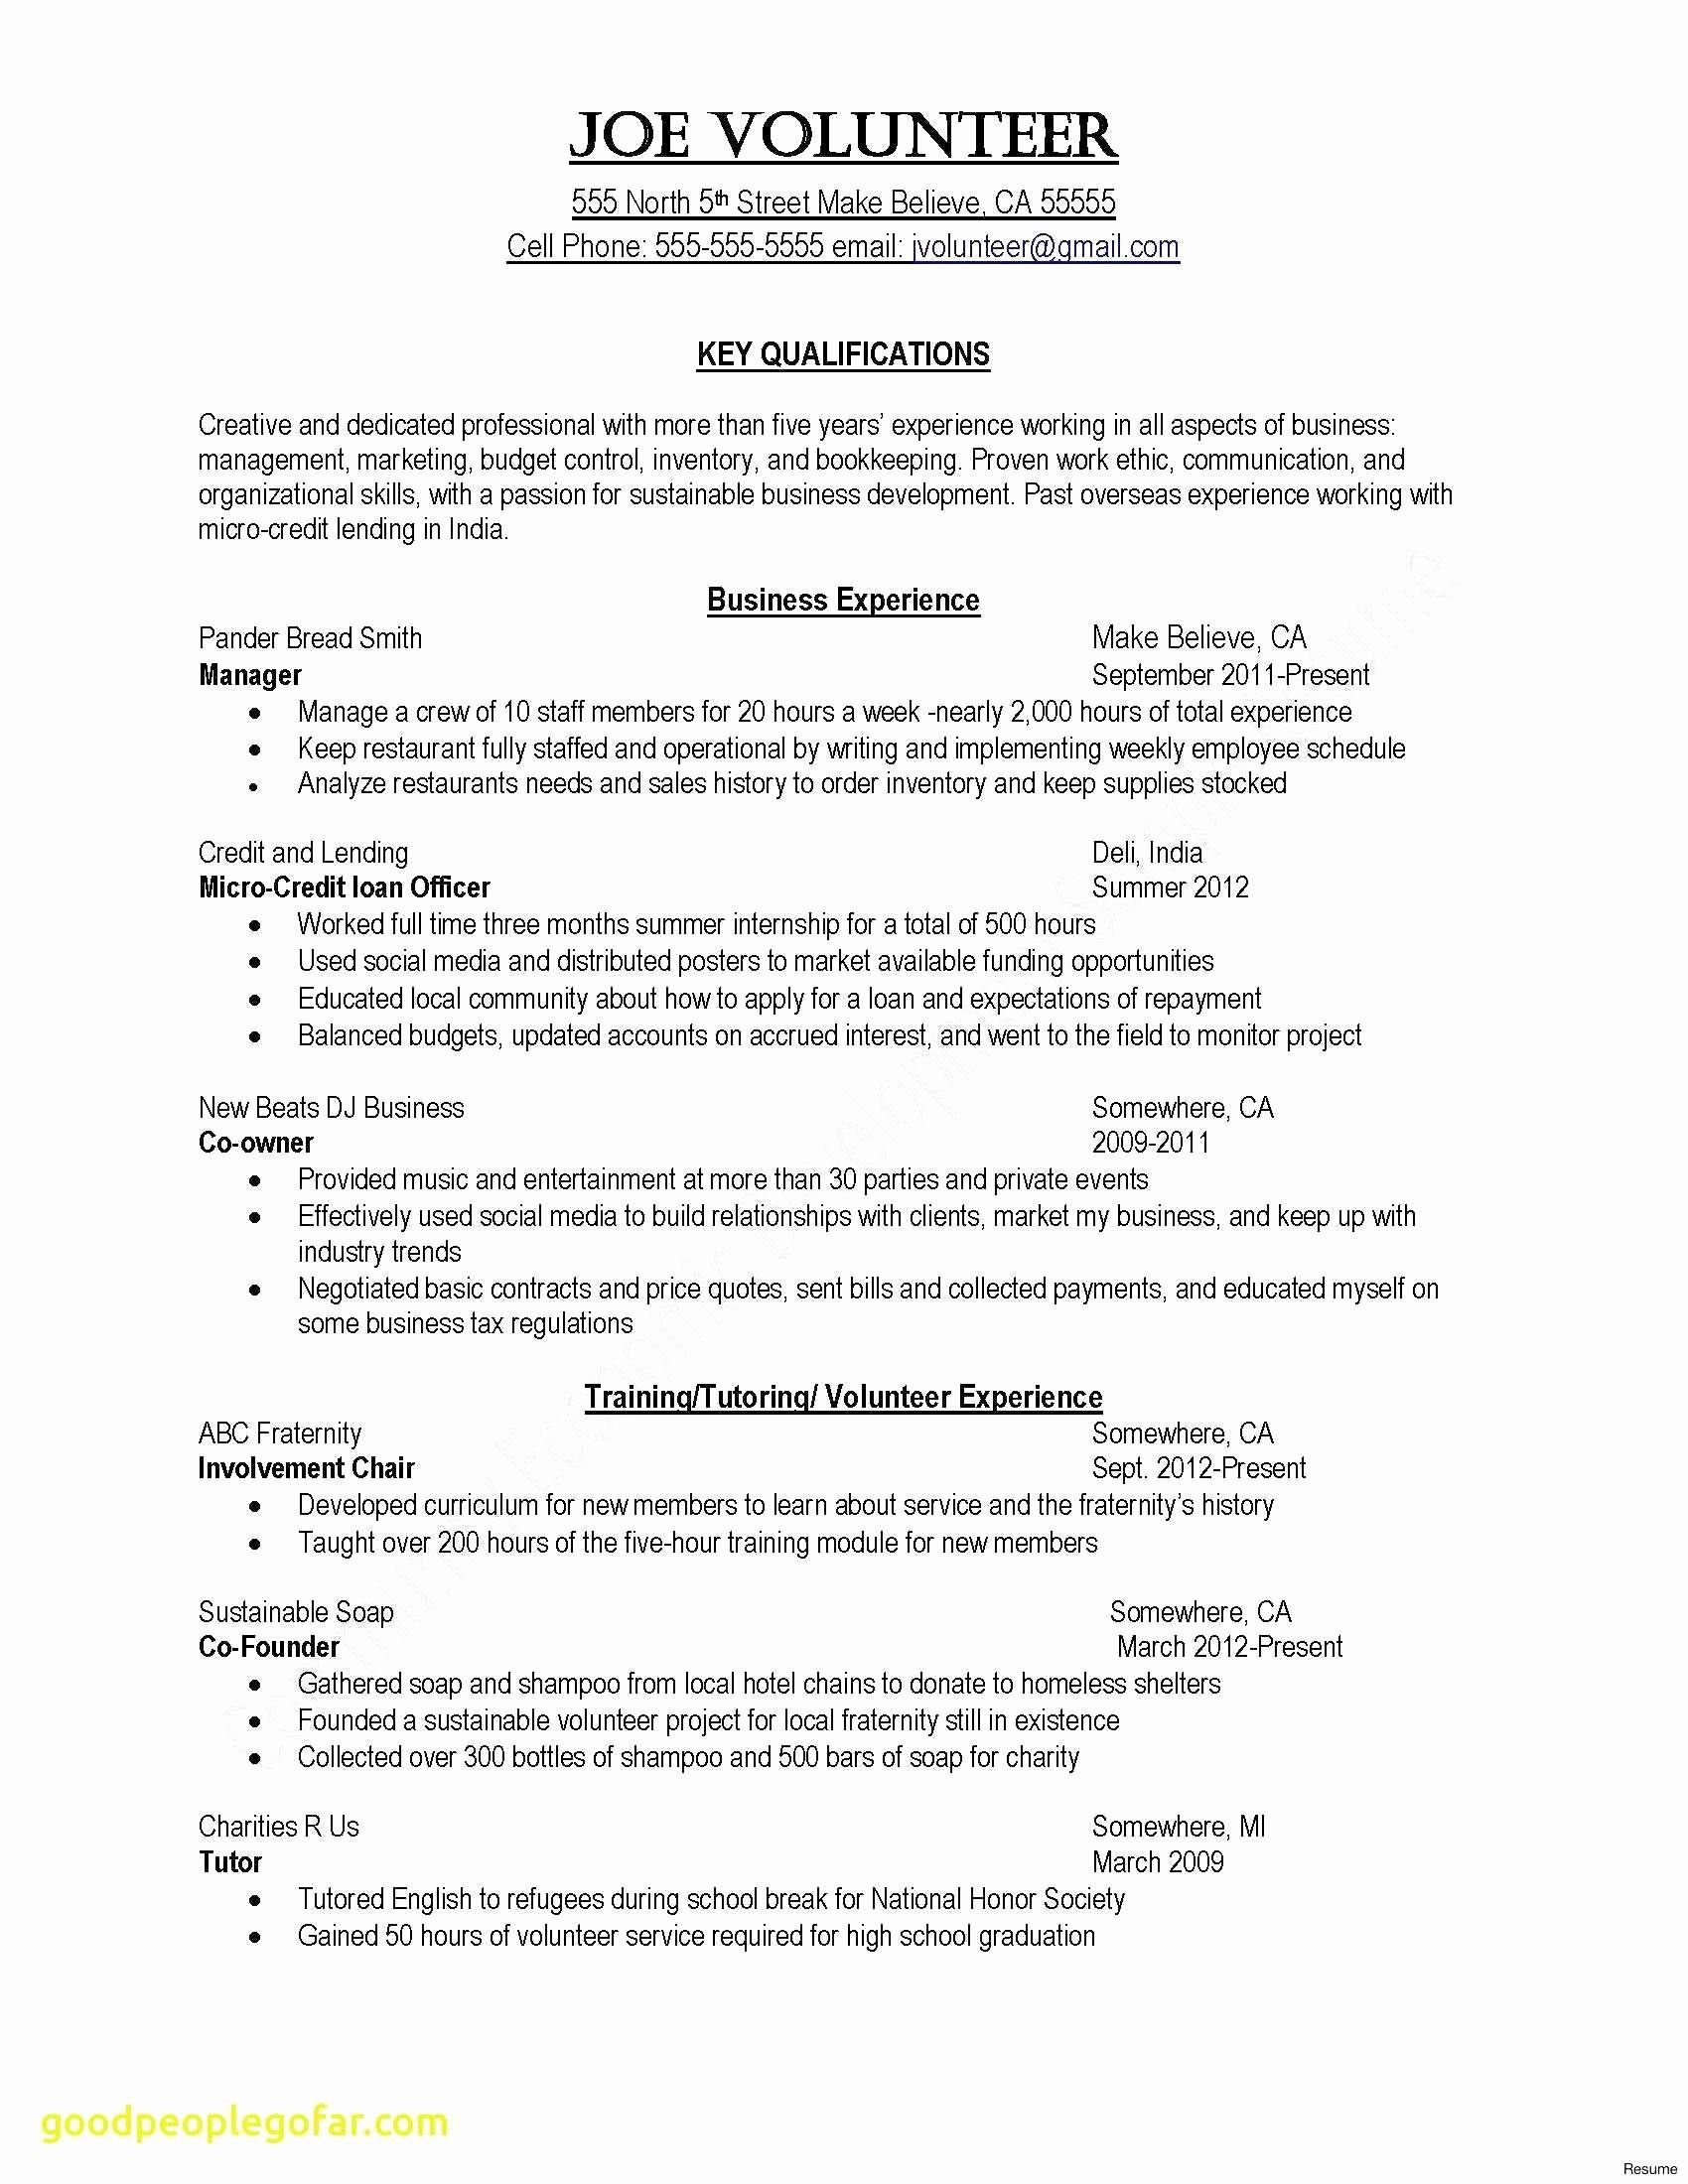 Resume Writing: Guidelines for New Grads